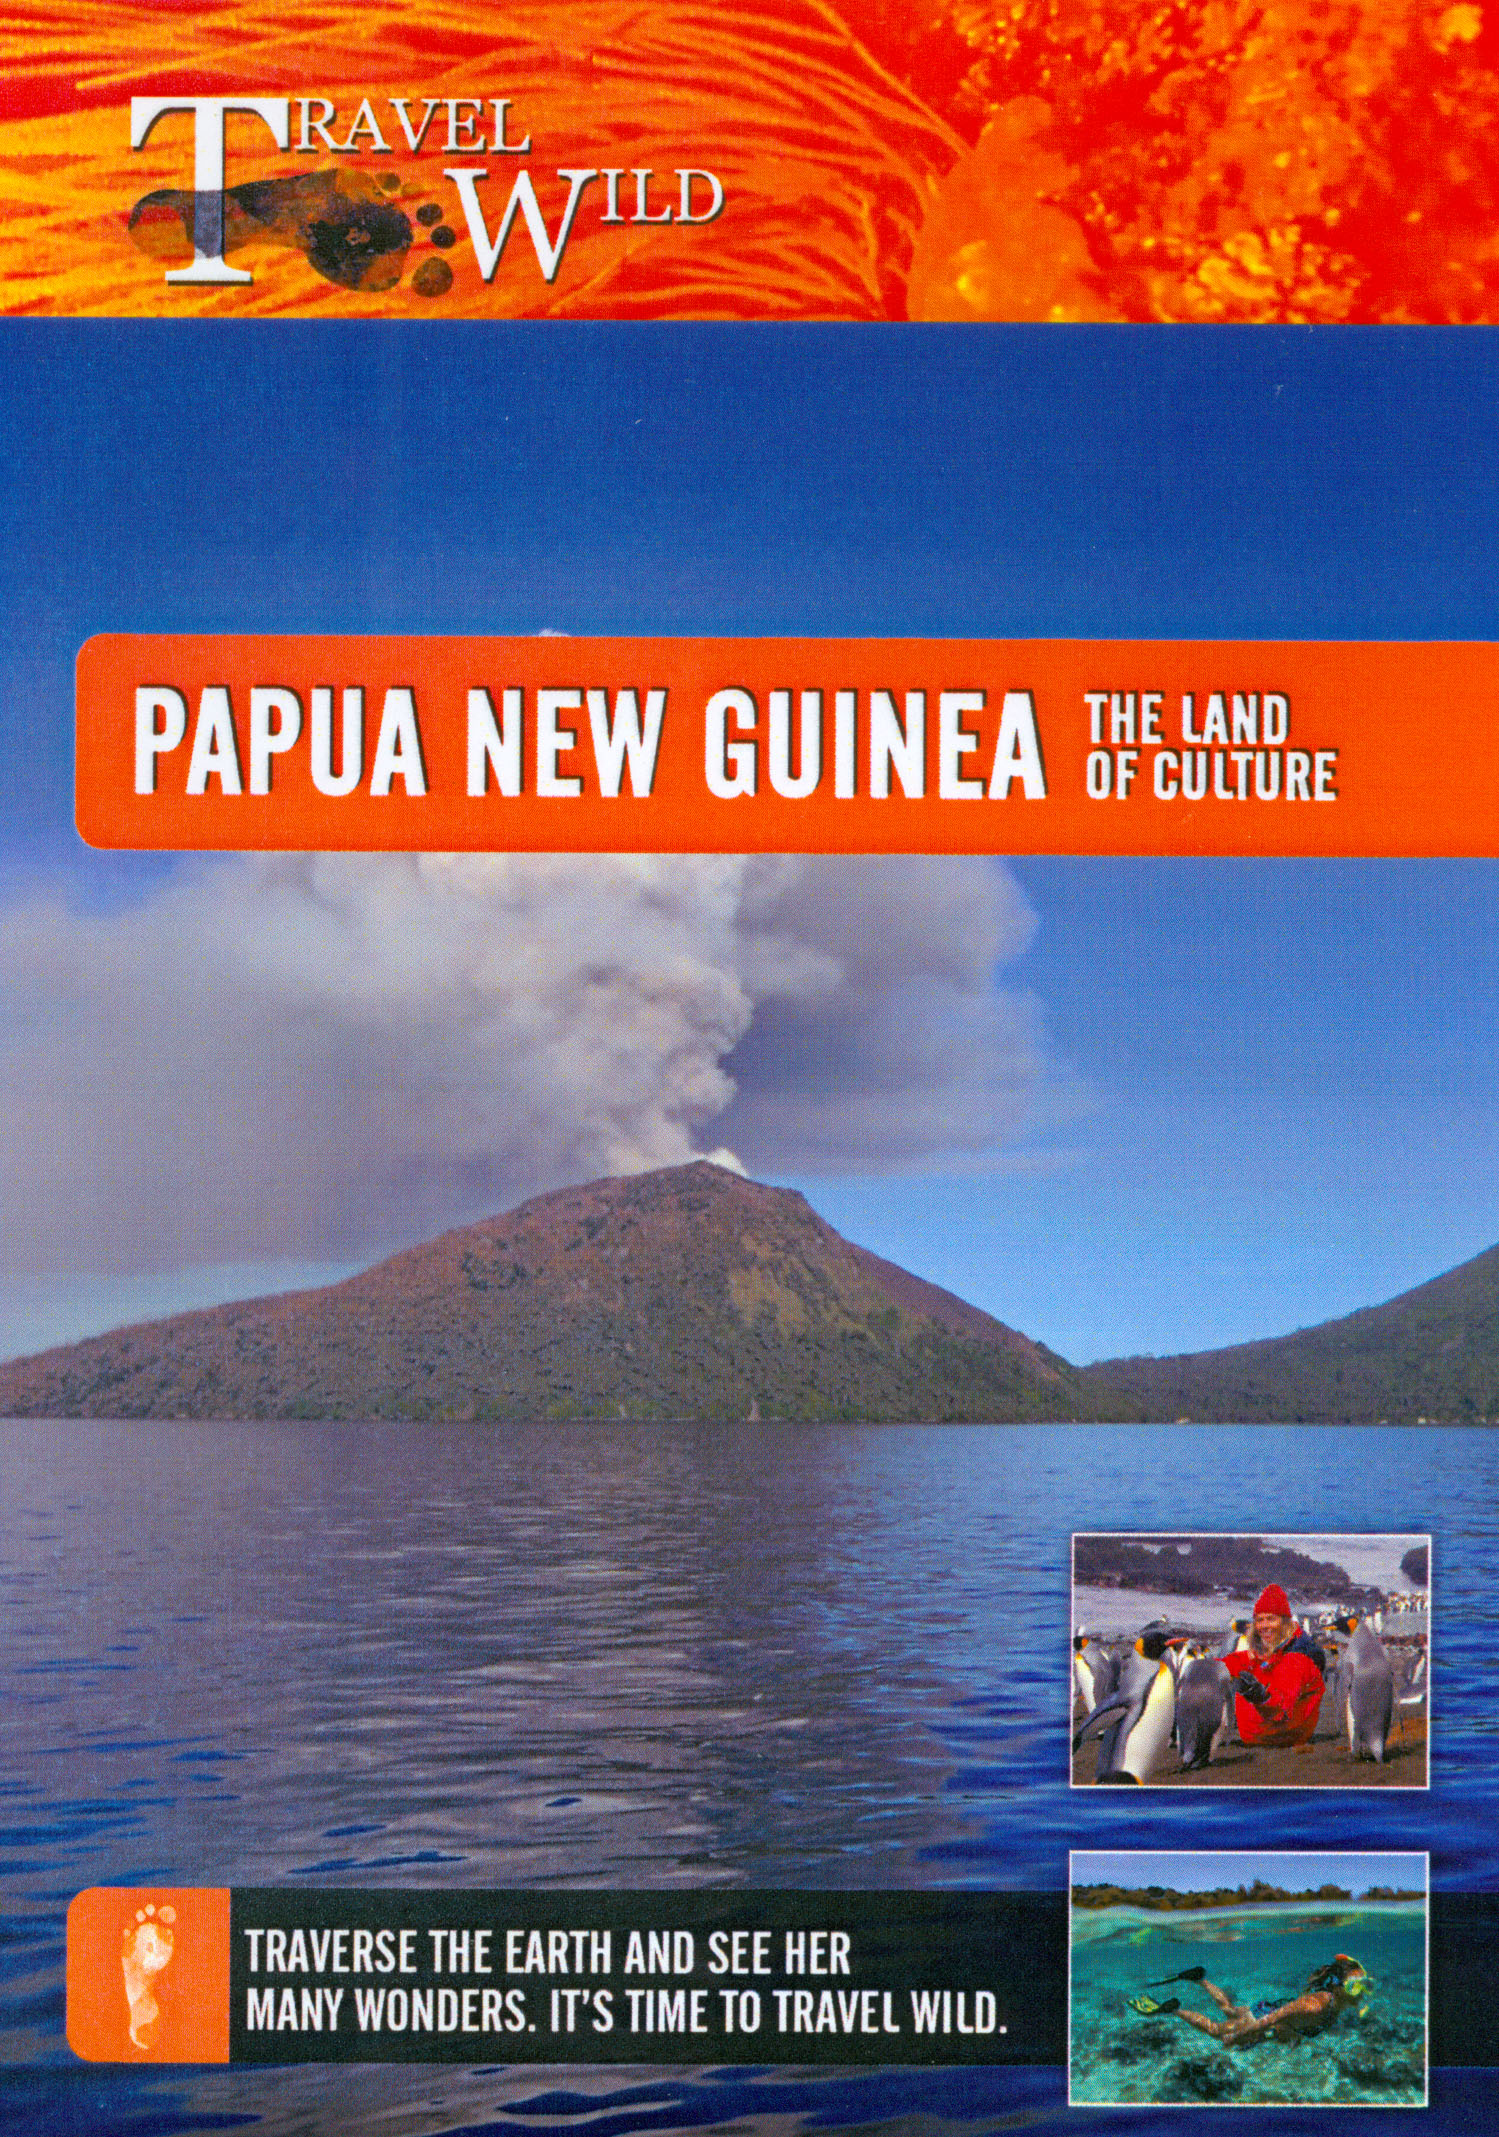 Travel Wild: Papua New Guinea - The Land of Culture